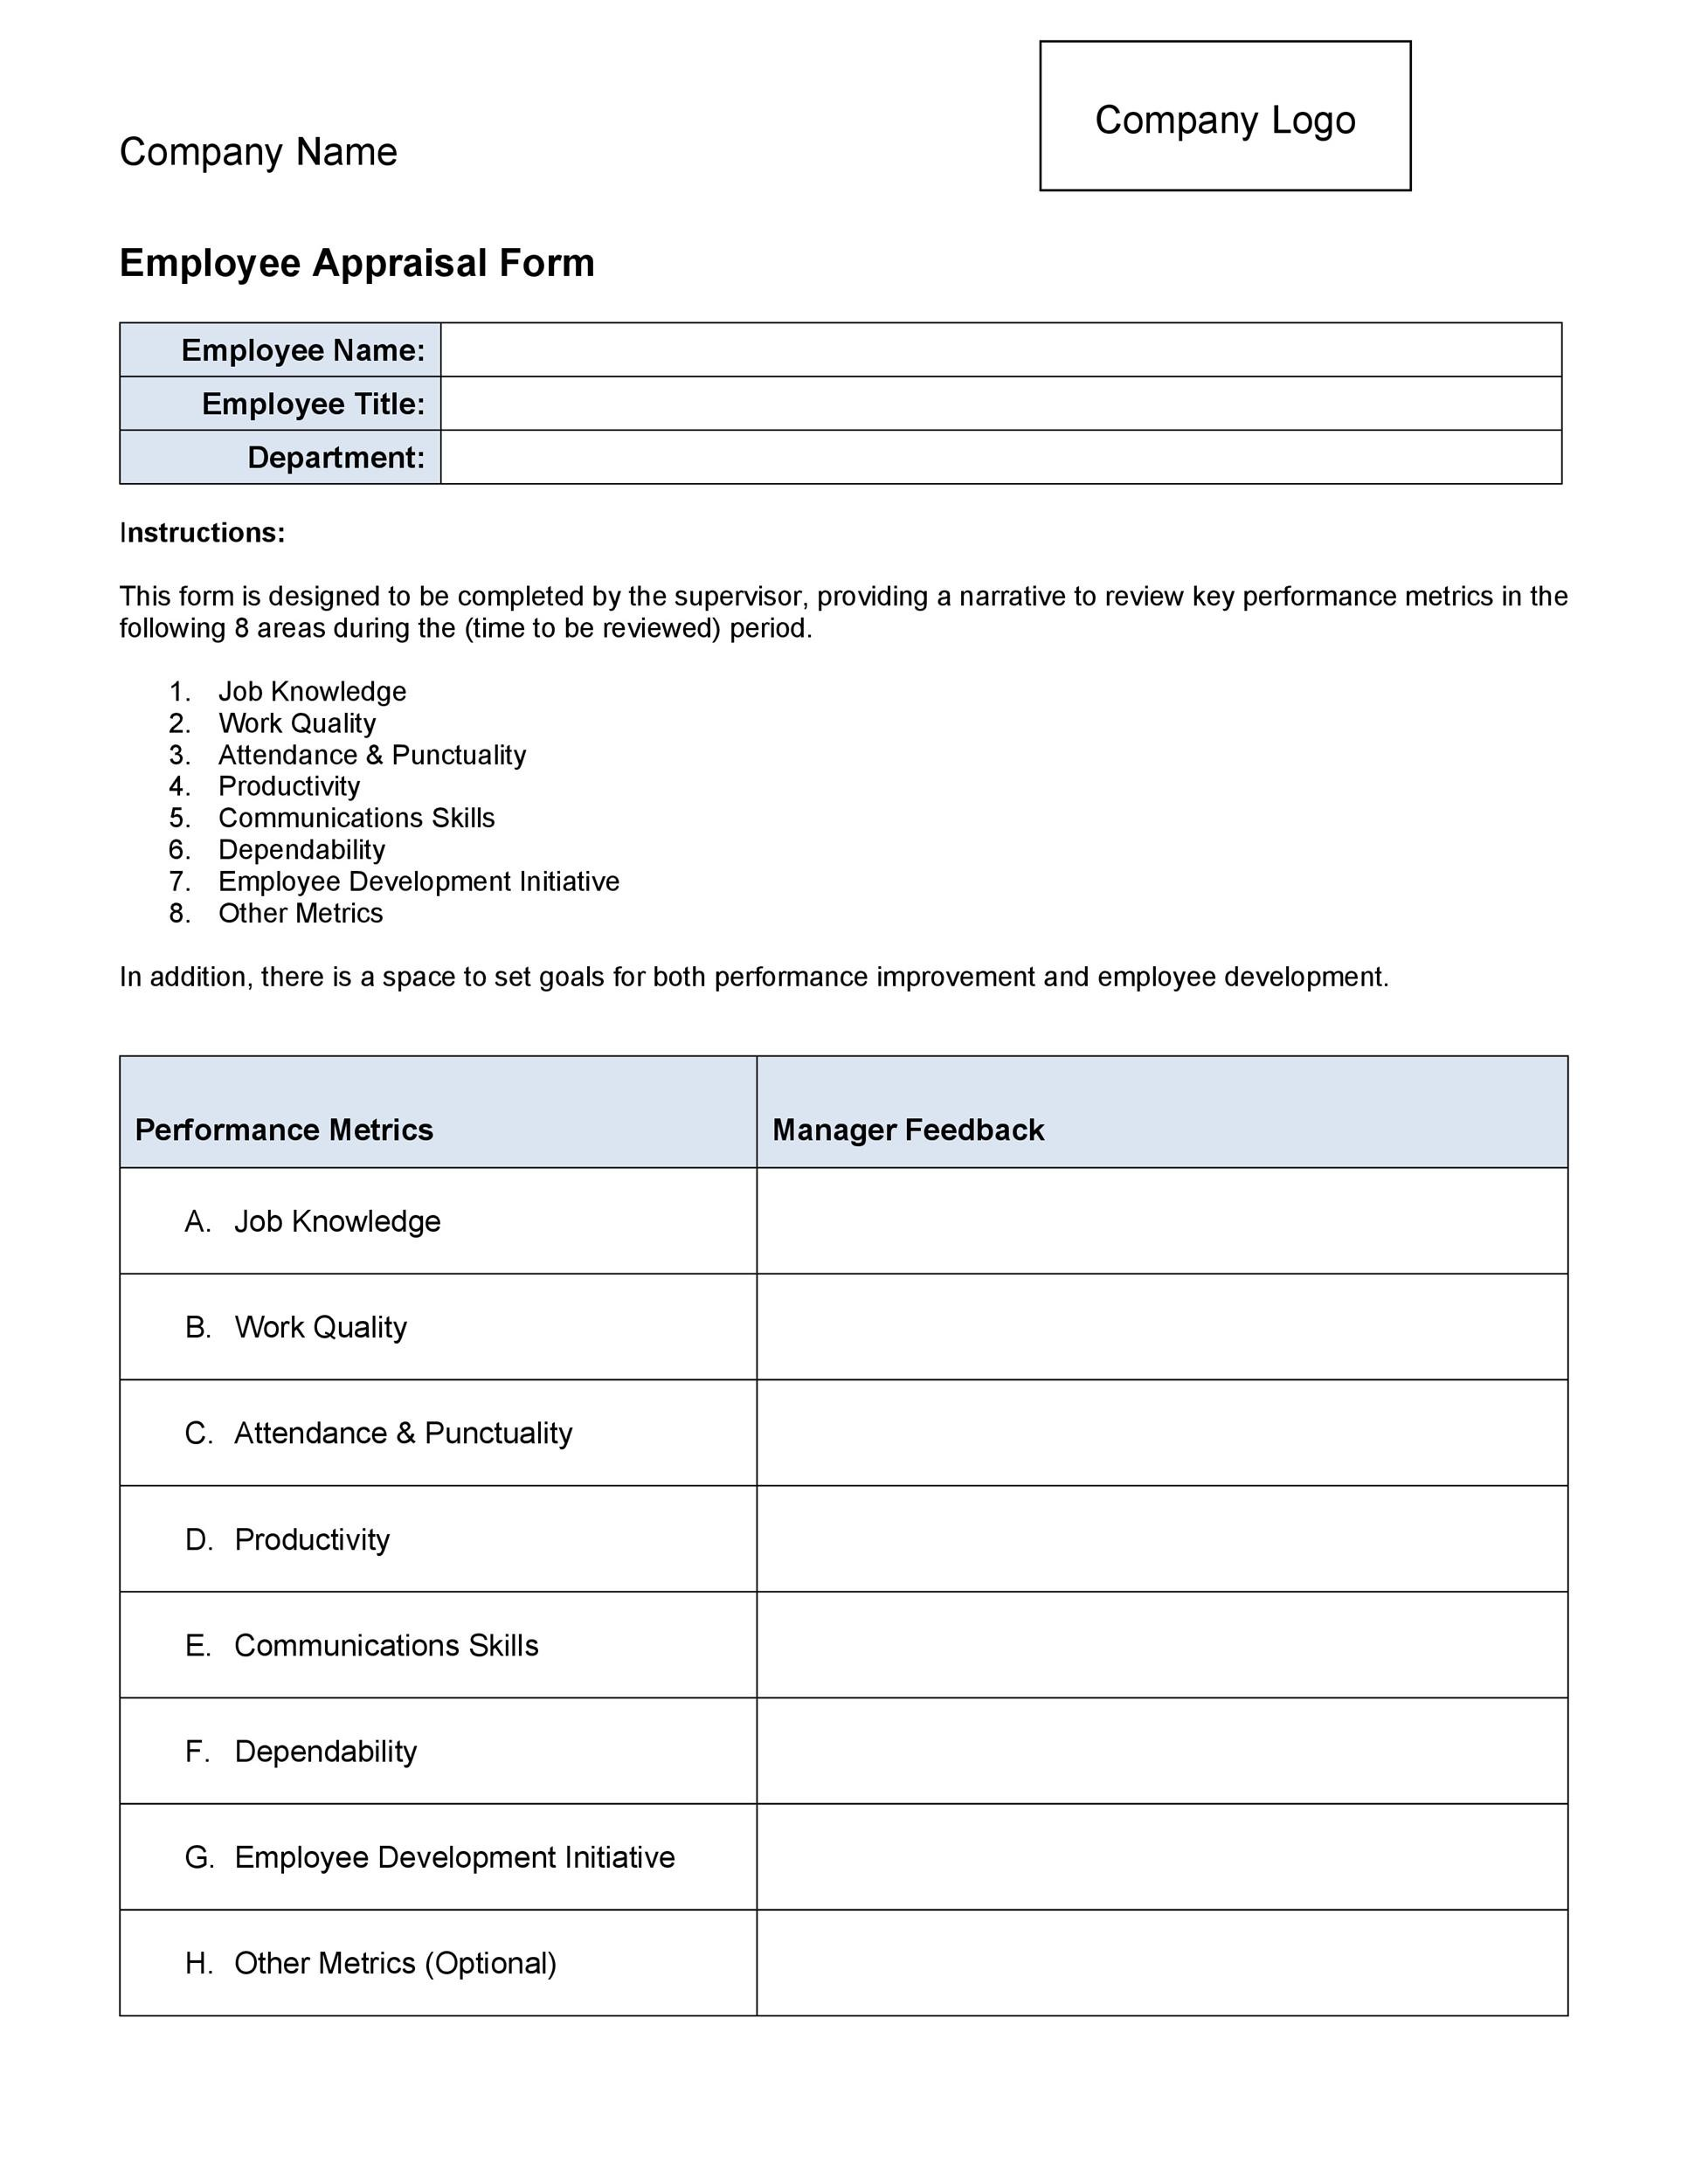 Printable Performance Review Examples 21  Employee Appraisal Form Sample